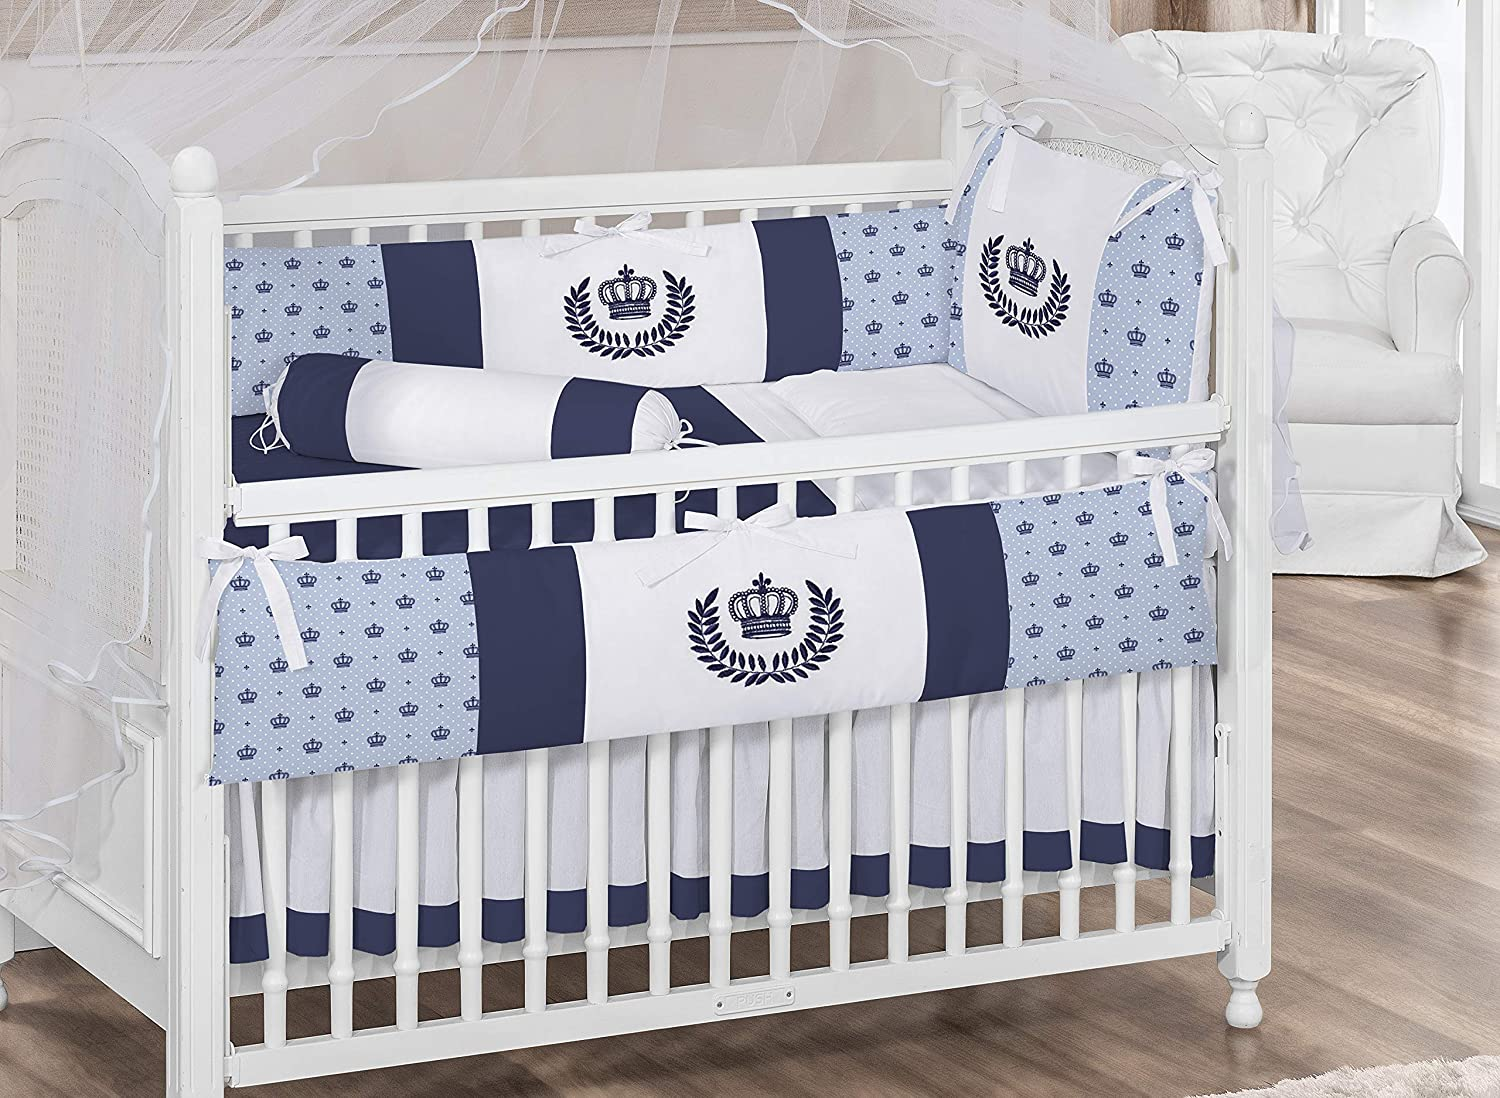 Royal Crown Theme Blue Baby Boy 07 Pcs Nursery Embroidered Crib Bedding Set Bumpers + Sheet Set